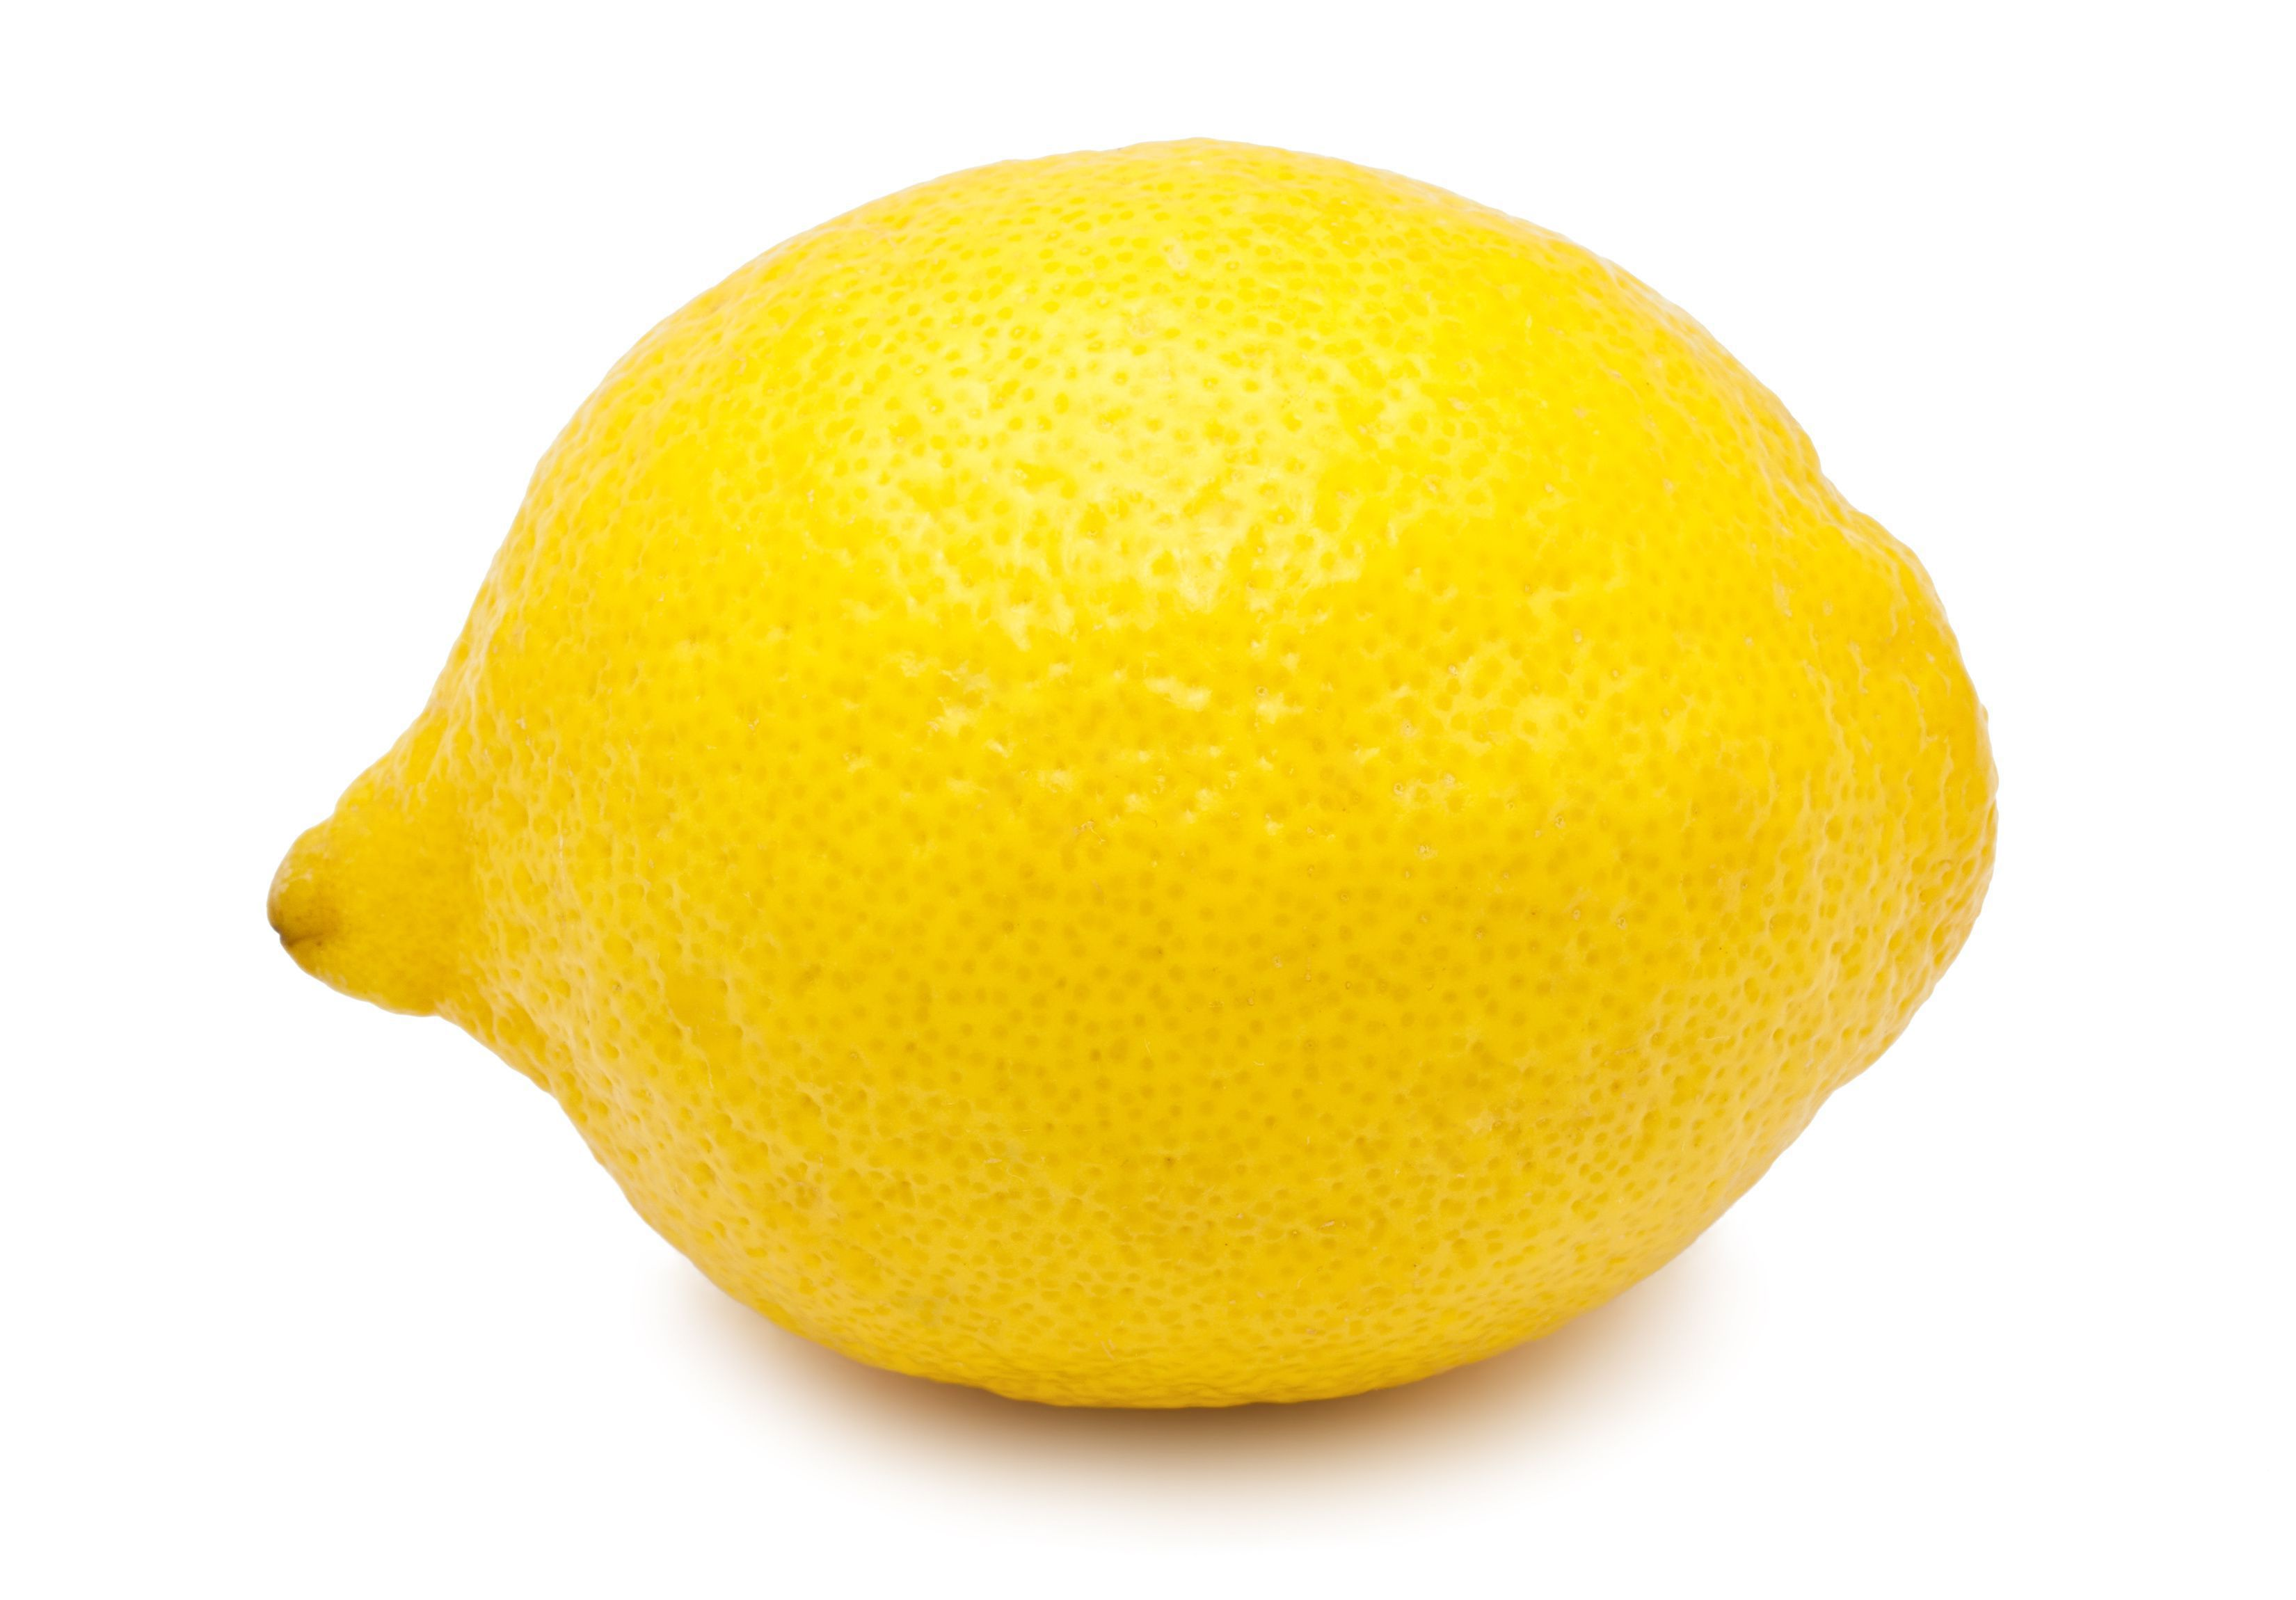 Lemon Pictures